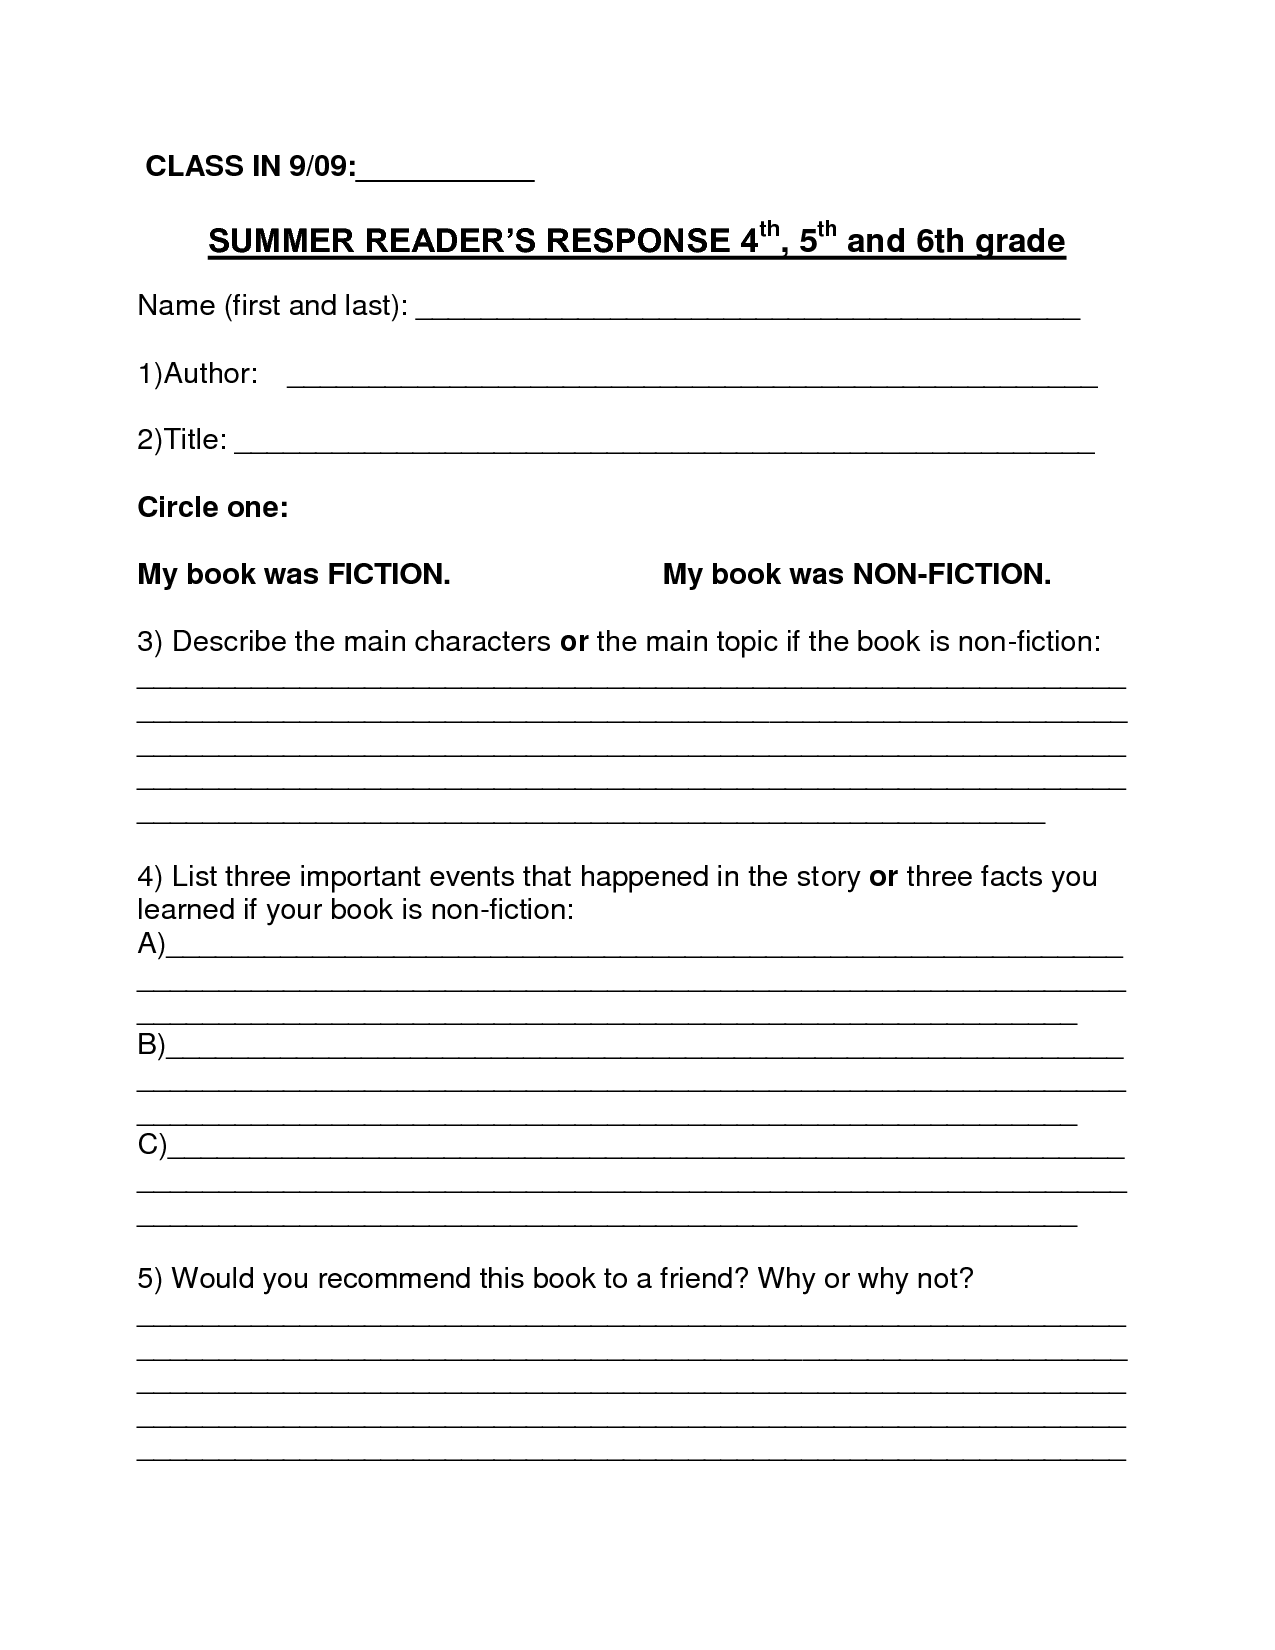 Book Report Template | SUMMER BOOK REPORT 4th -6th grade - Download ...